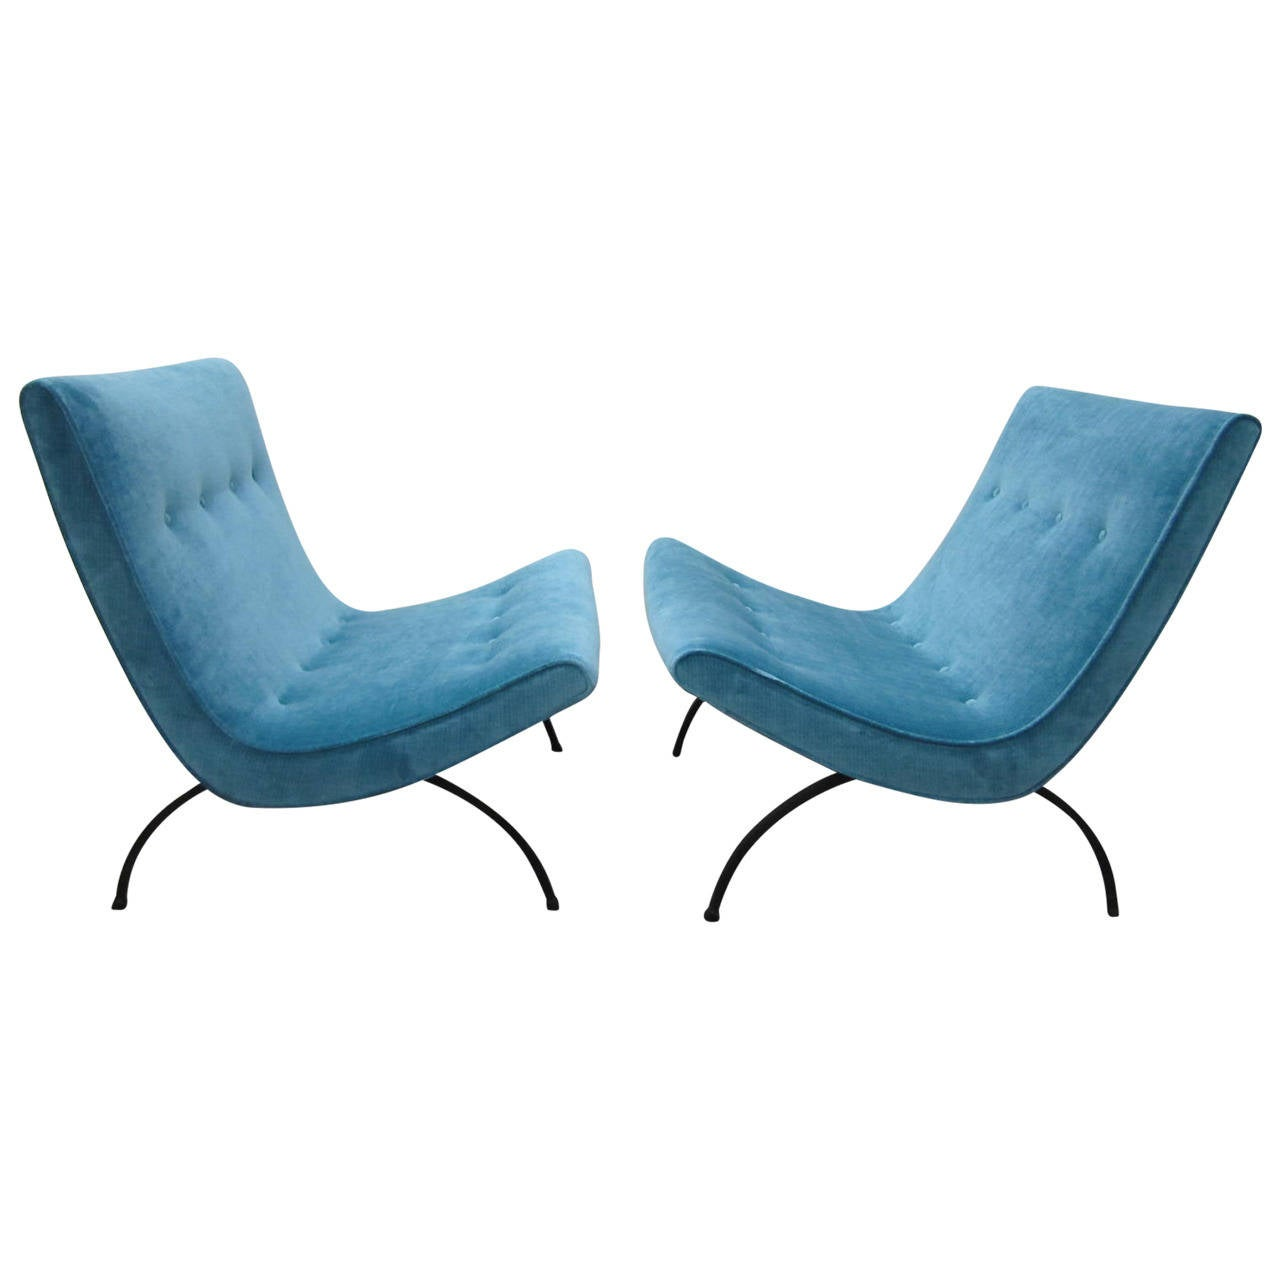 Delightful Outstanding Pair Of Milo Baughman Scoop Lounge Chairs, Mid Century Modern 1